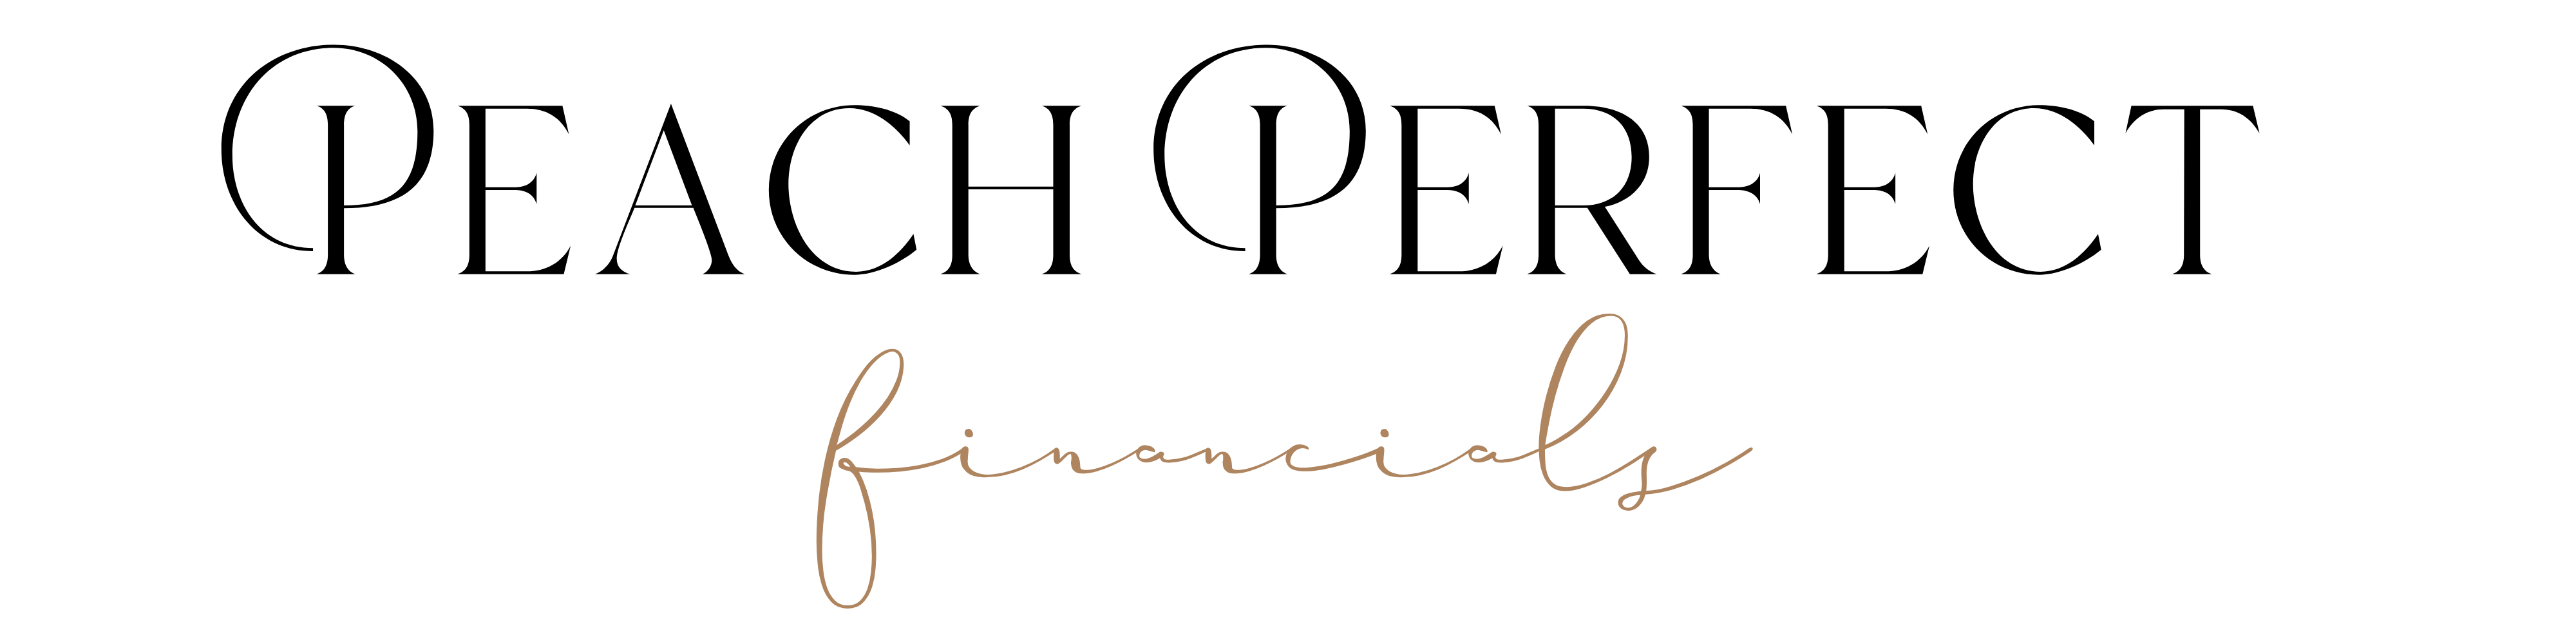 Scripted black and gold logo